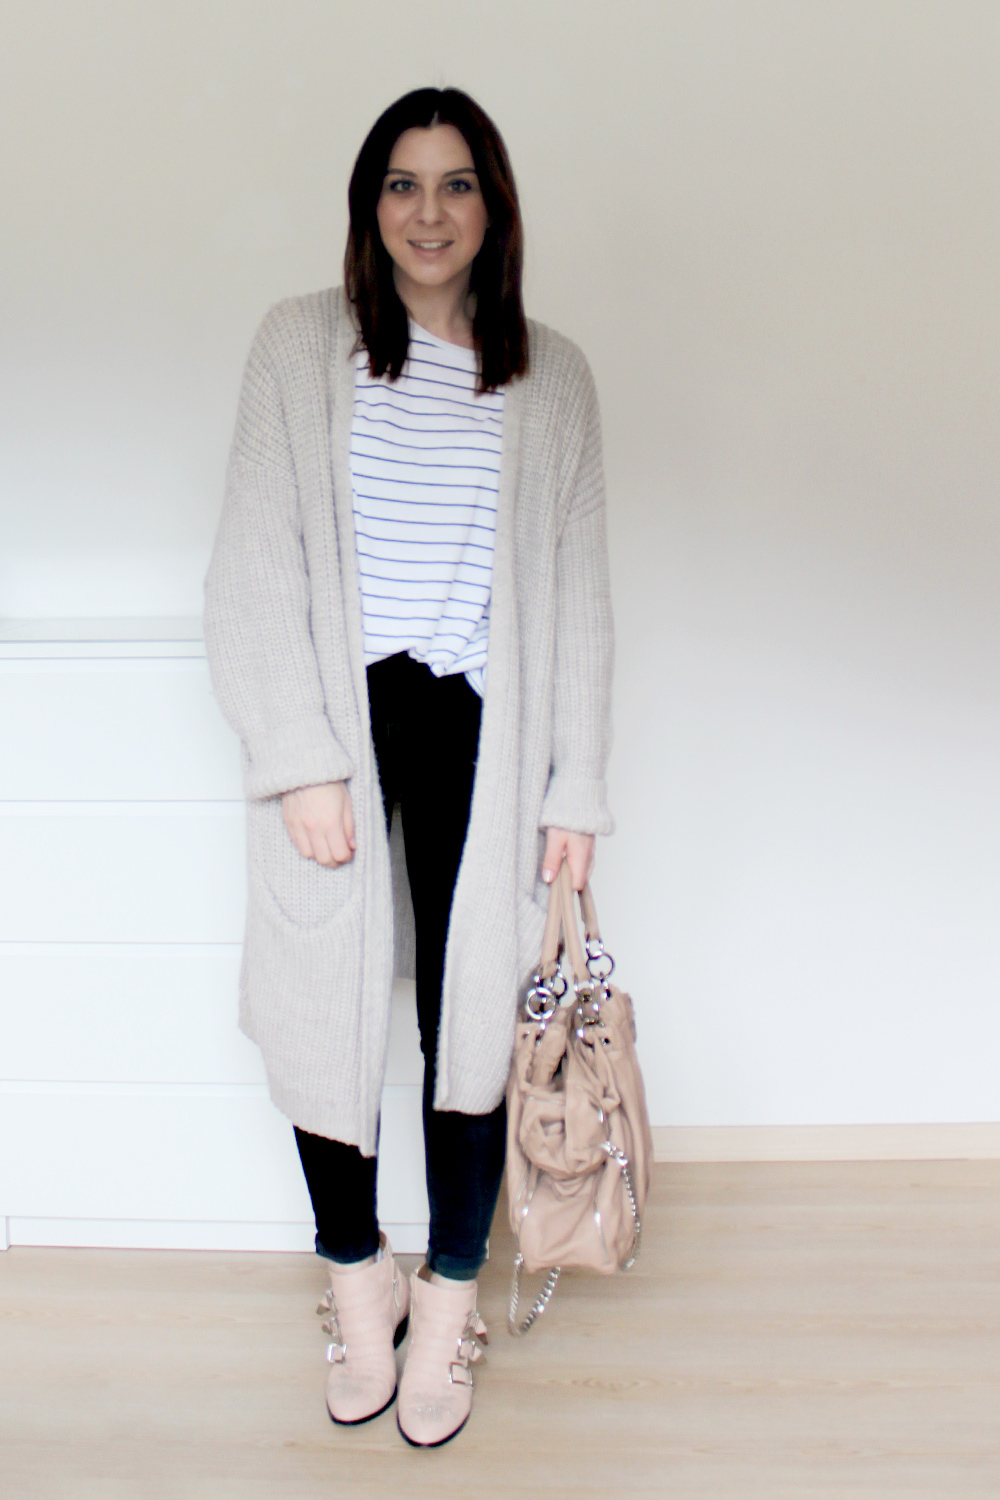 who is mocca, blogger, tirol, outfit, ootd, fashionblogger, weekly wardrobe review, alltagsoutfit, everyday look, inspiration, wie kombiniere ich, how to style, chanel jumbo, chloe susanna boots, balenciaga motorcycle bag, boyfriend jeans, pumps, kleiderkreisel, whoismocca.com